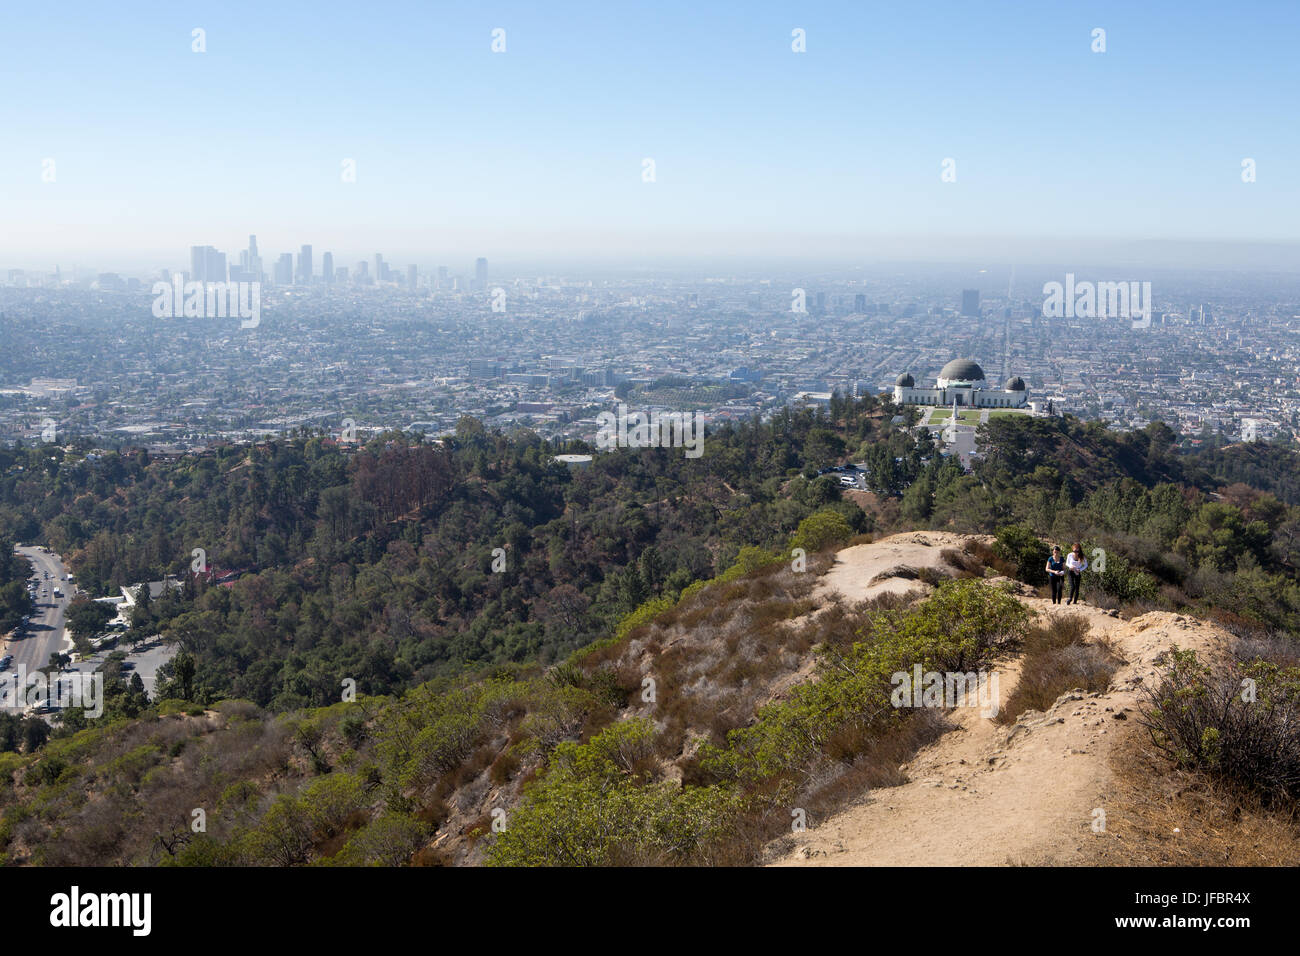 Hikers follow a path near Griffith Observatory. Air pollution hangs over Los Angeles. - Stock Image